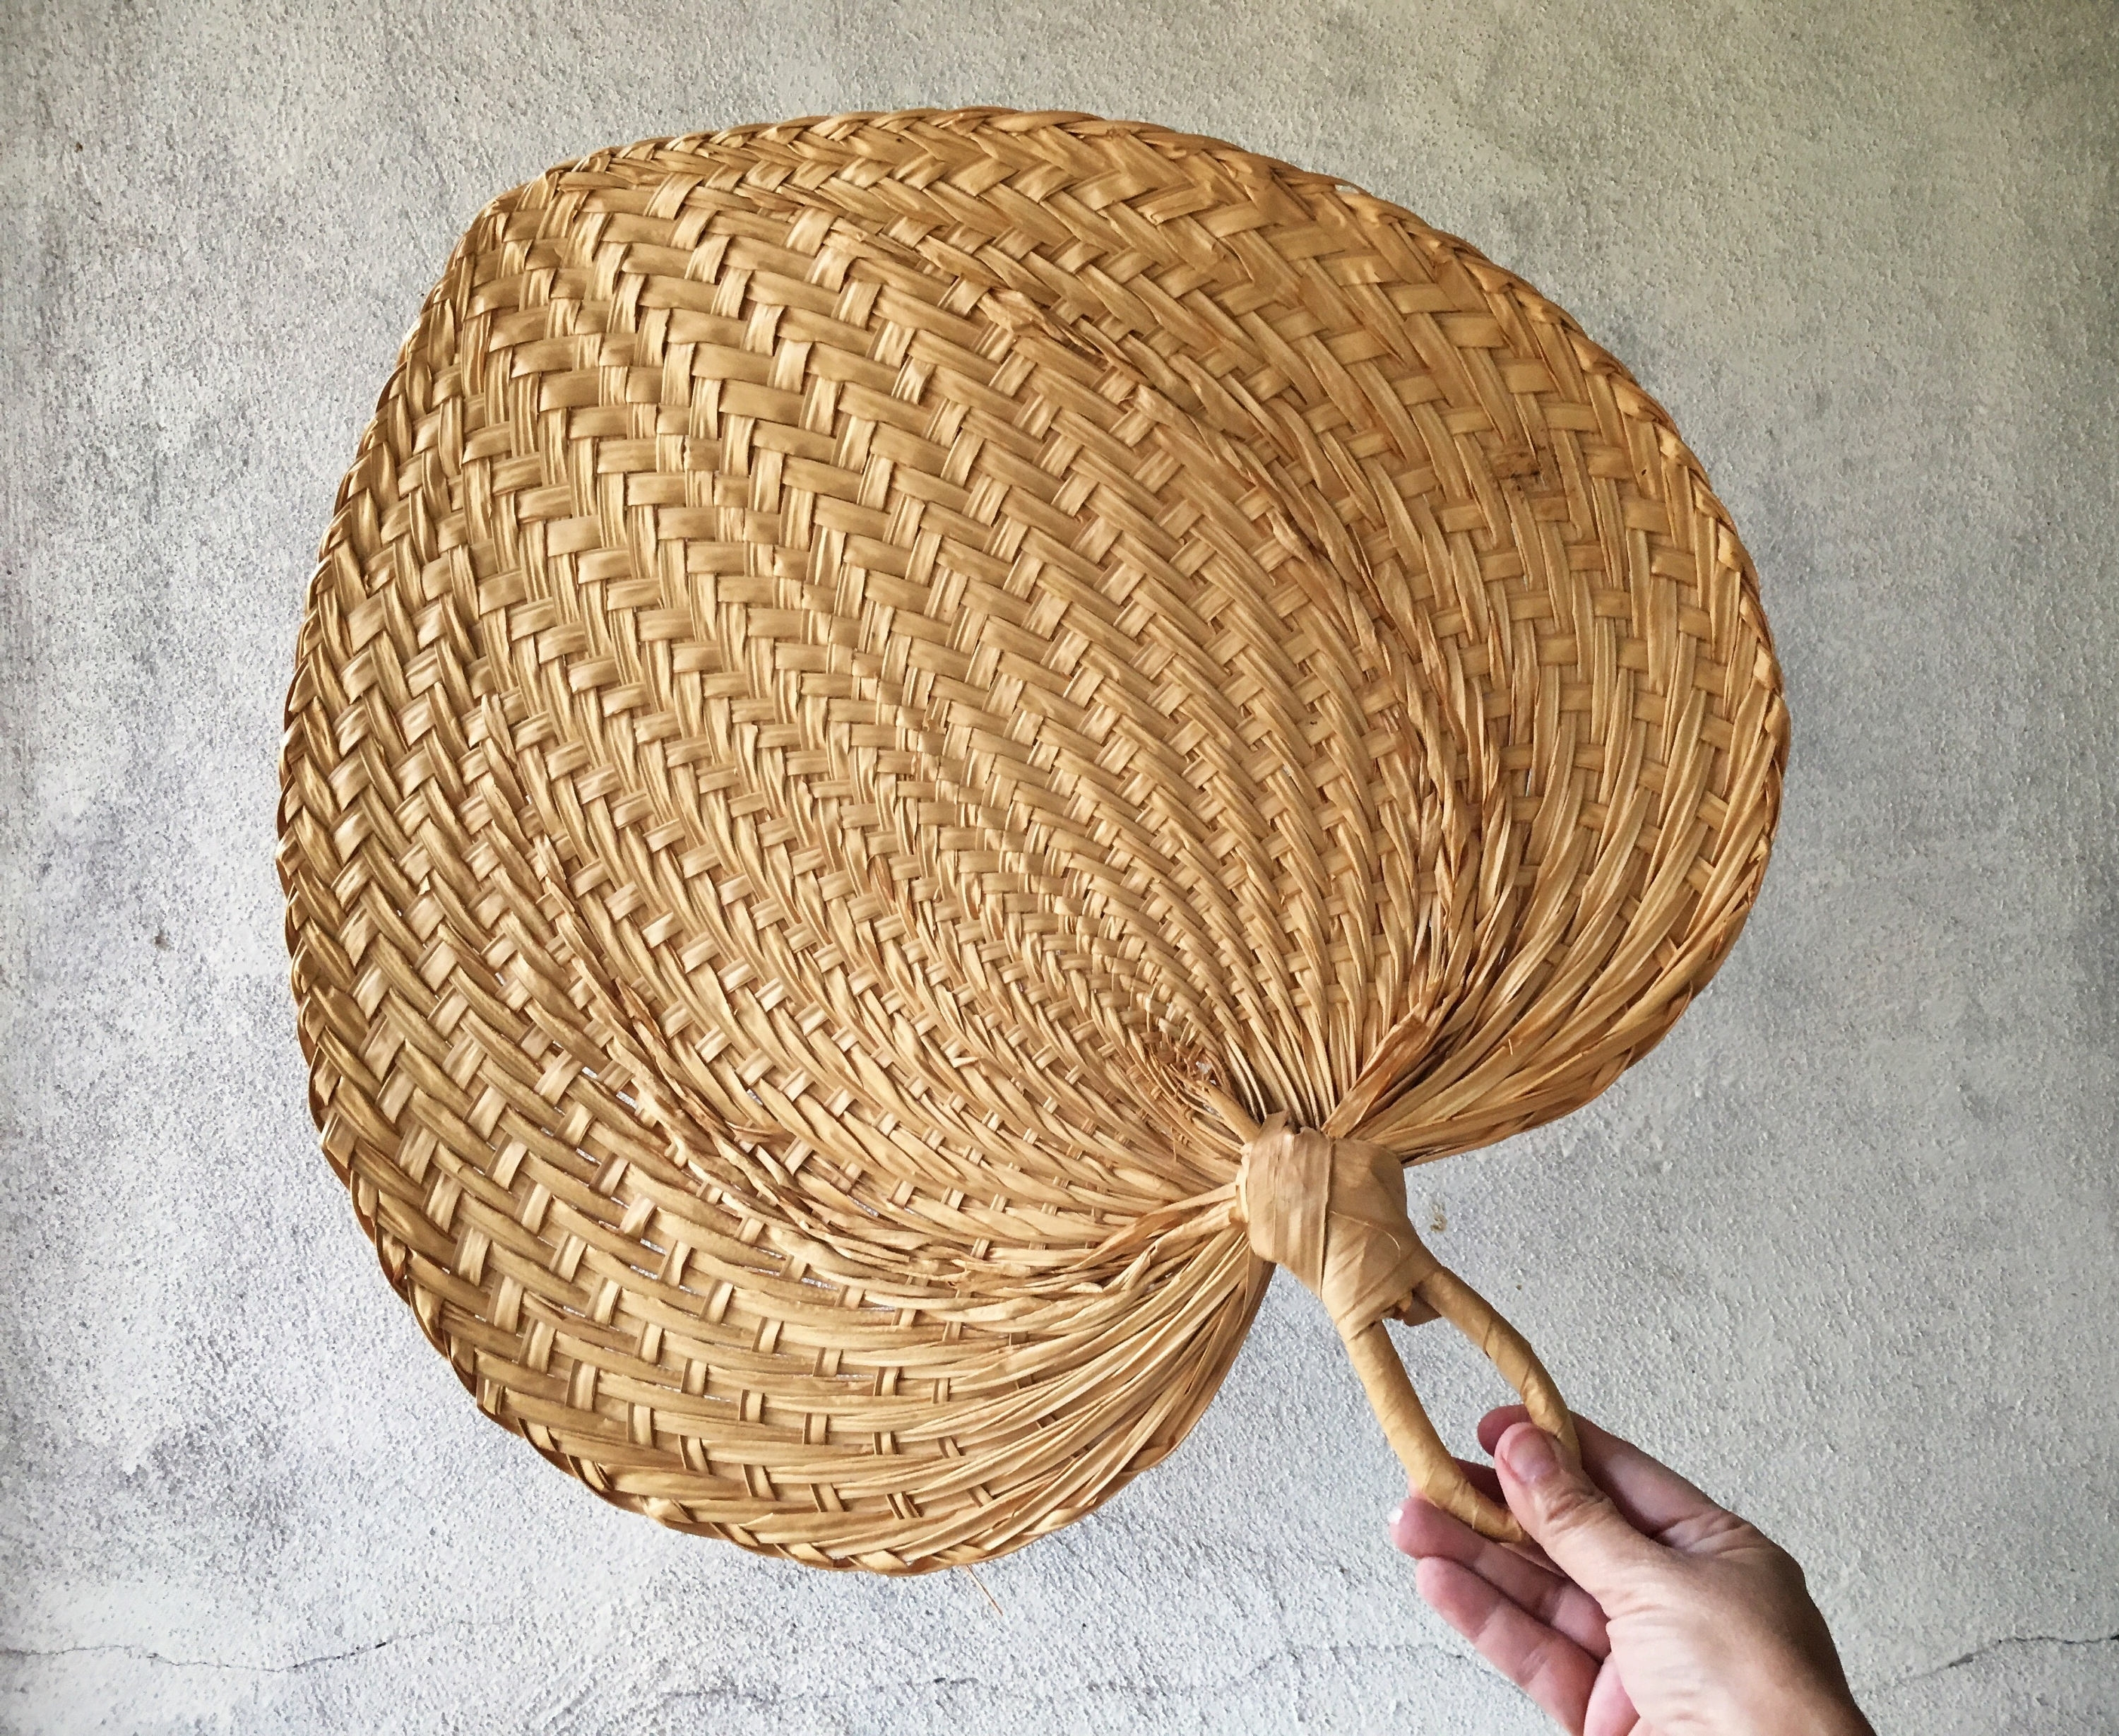 Woven Basket Wall Art Within Most Popular Vintage Woven Straw Fan Wall Hanging Jungalow Decor Wicker Wall Art (View 20 of 20)